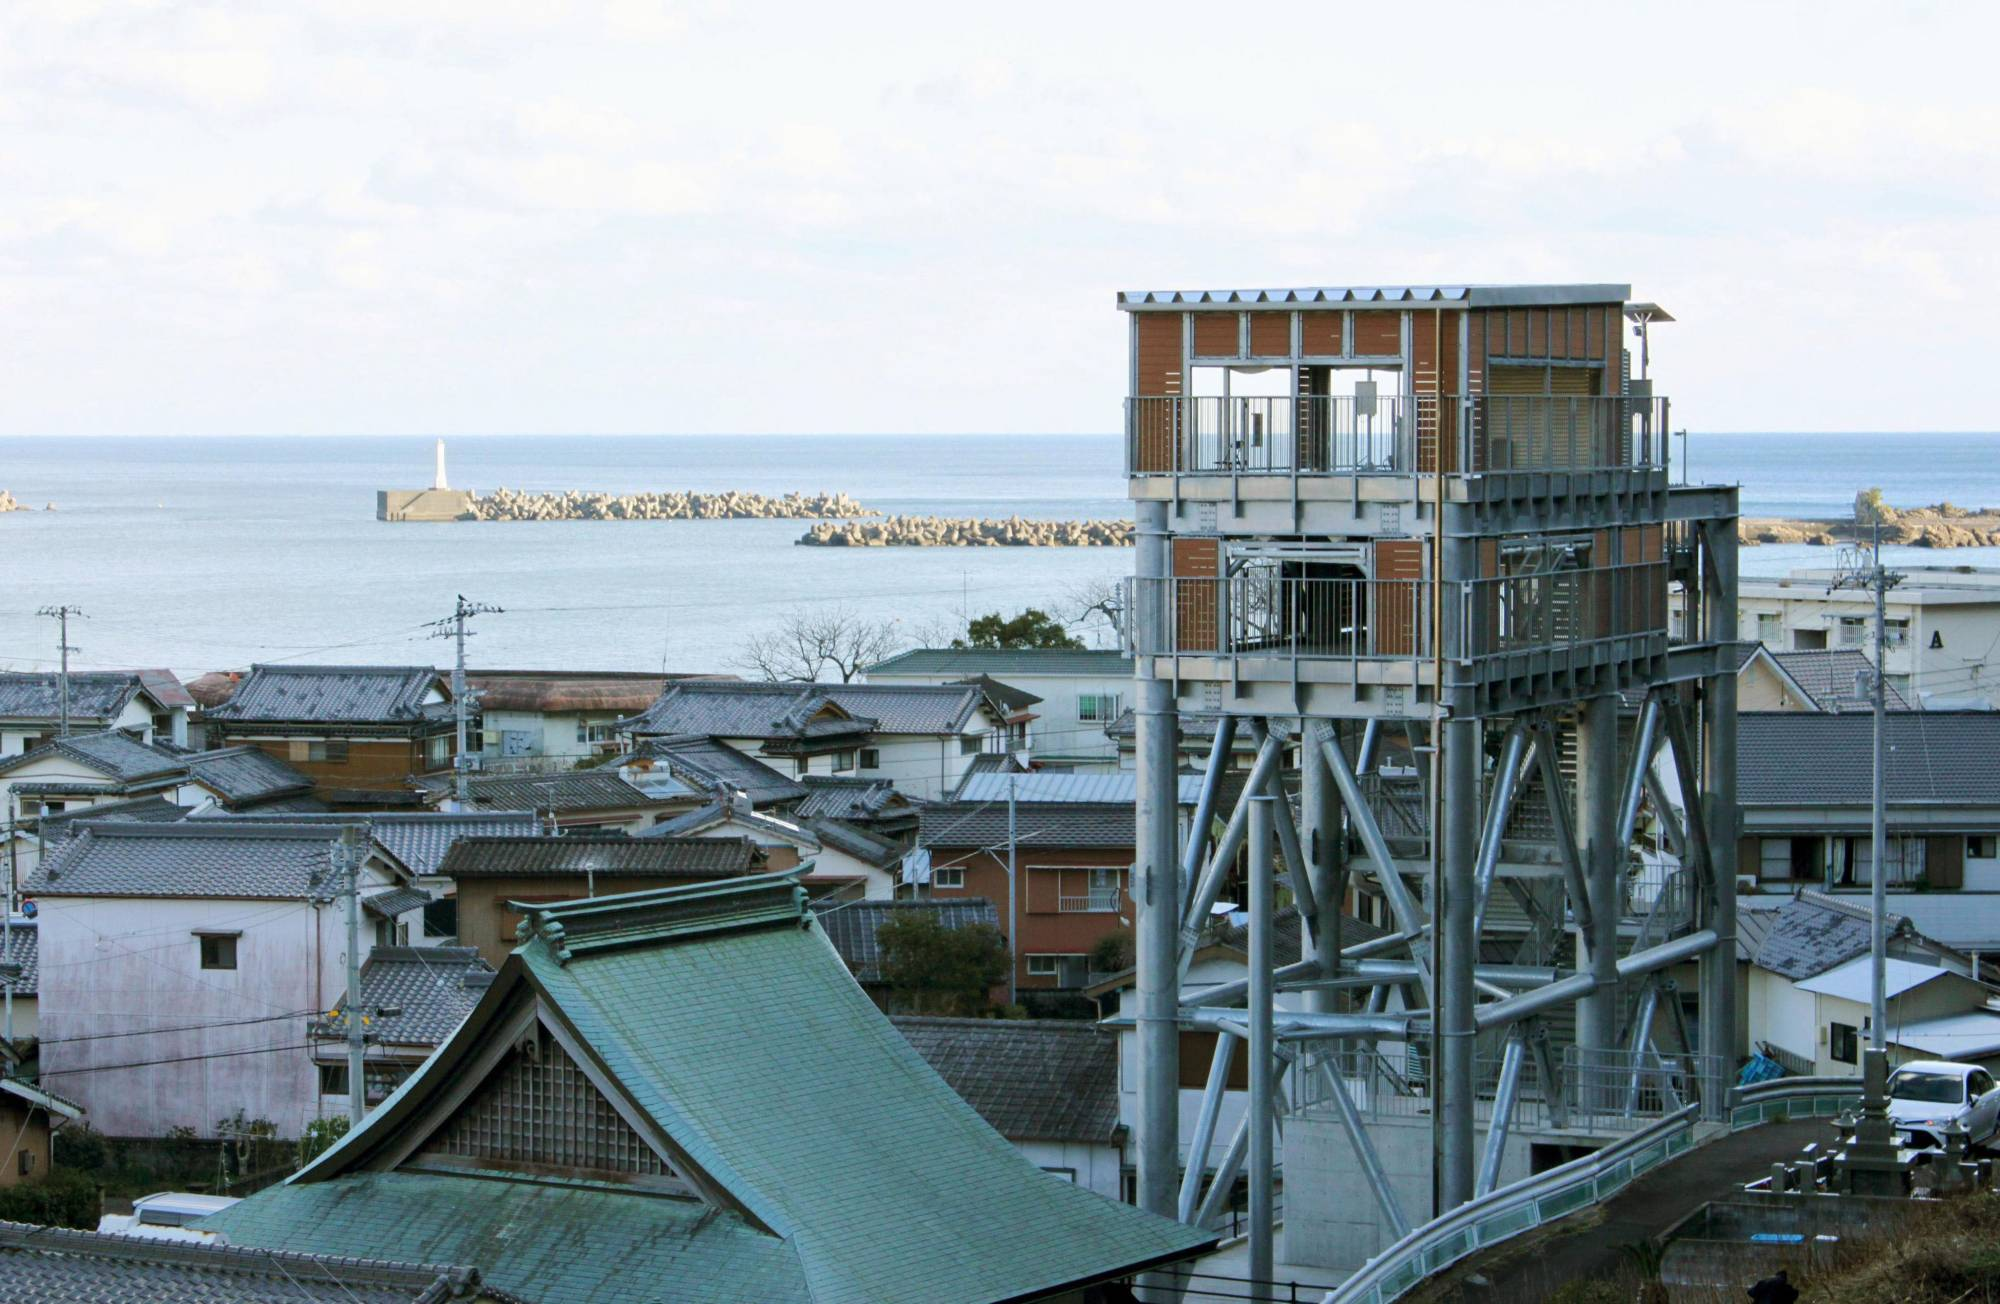 High ground: An evacuation tower in Kuroshiro, Kochi Prefecture, hopes to offer some refuge in the event of a tsunami. | KYODO